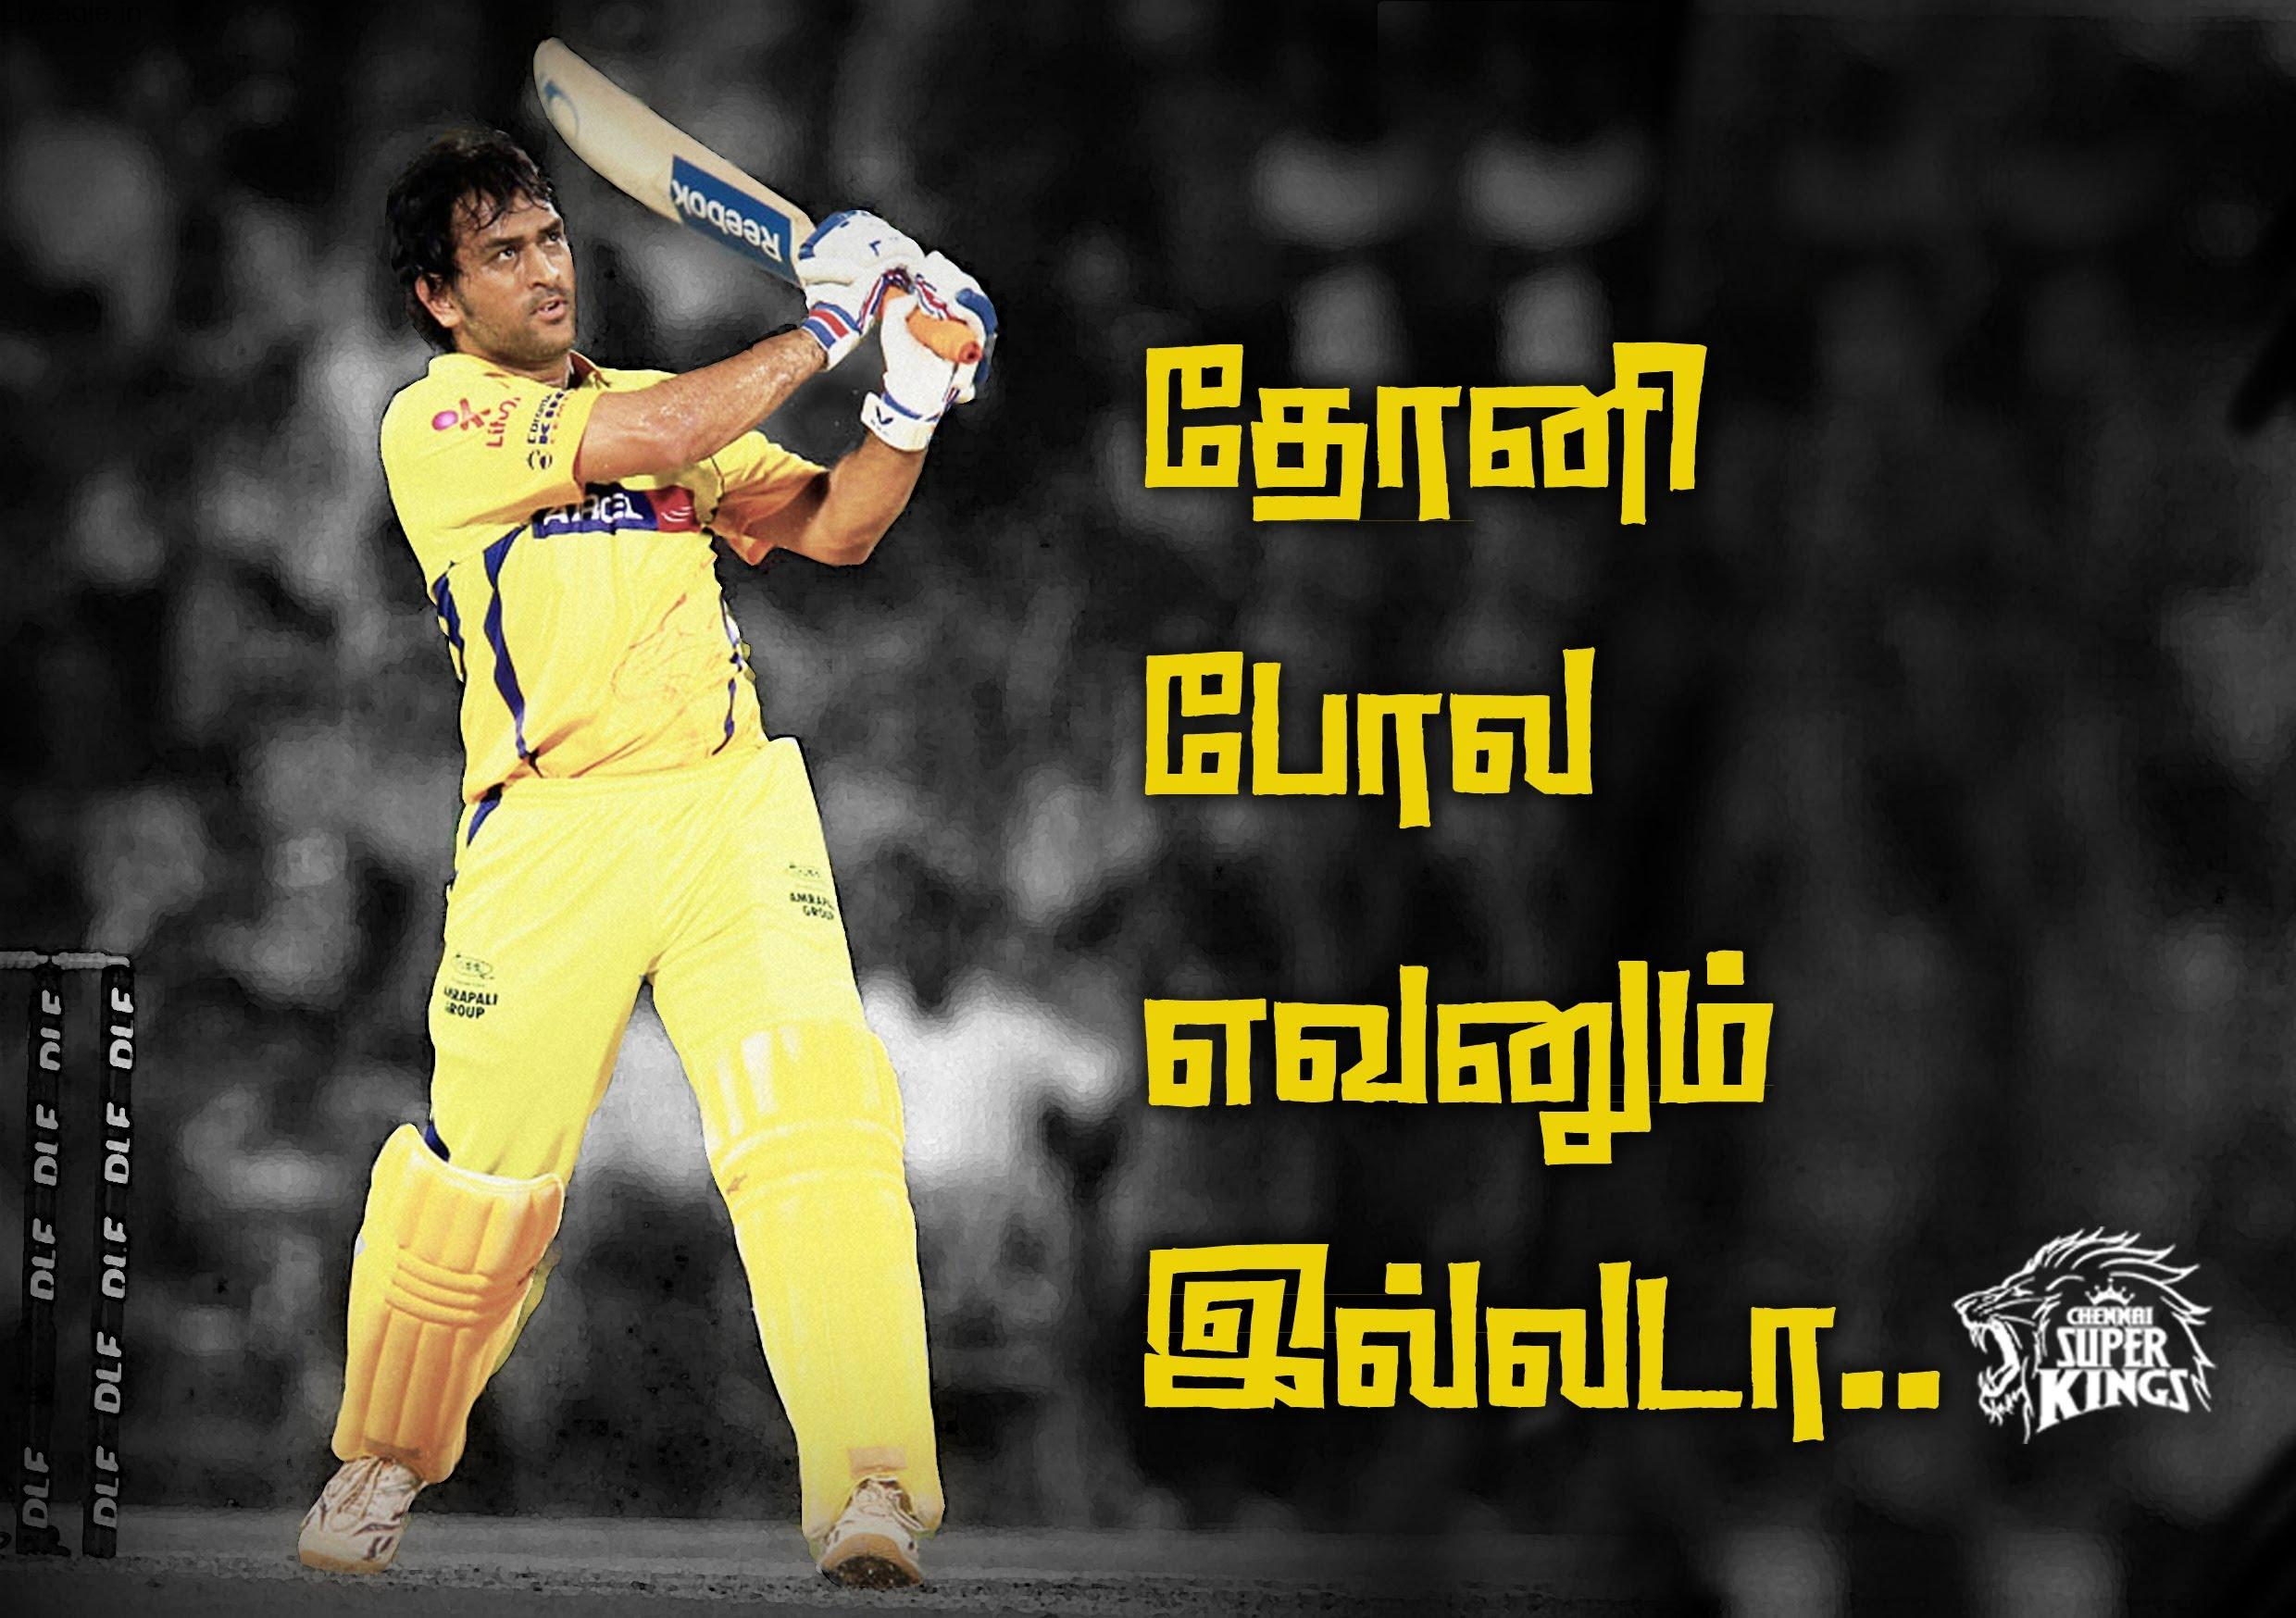 Dhoni Csk Wallpapers Hd: MS Dhoni Wallpapers